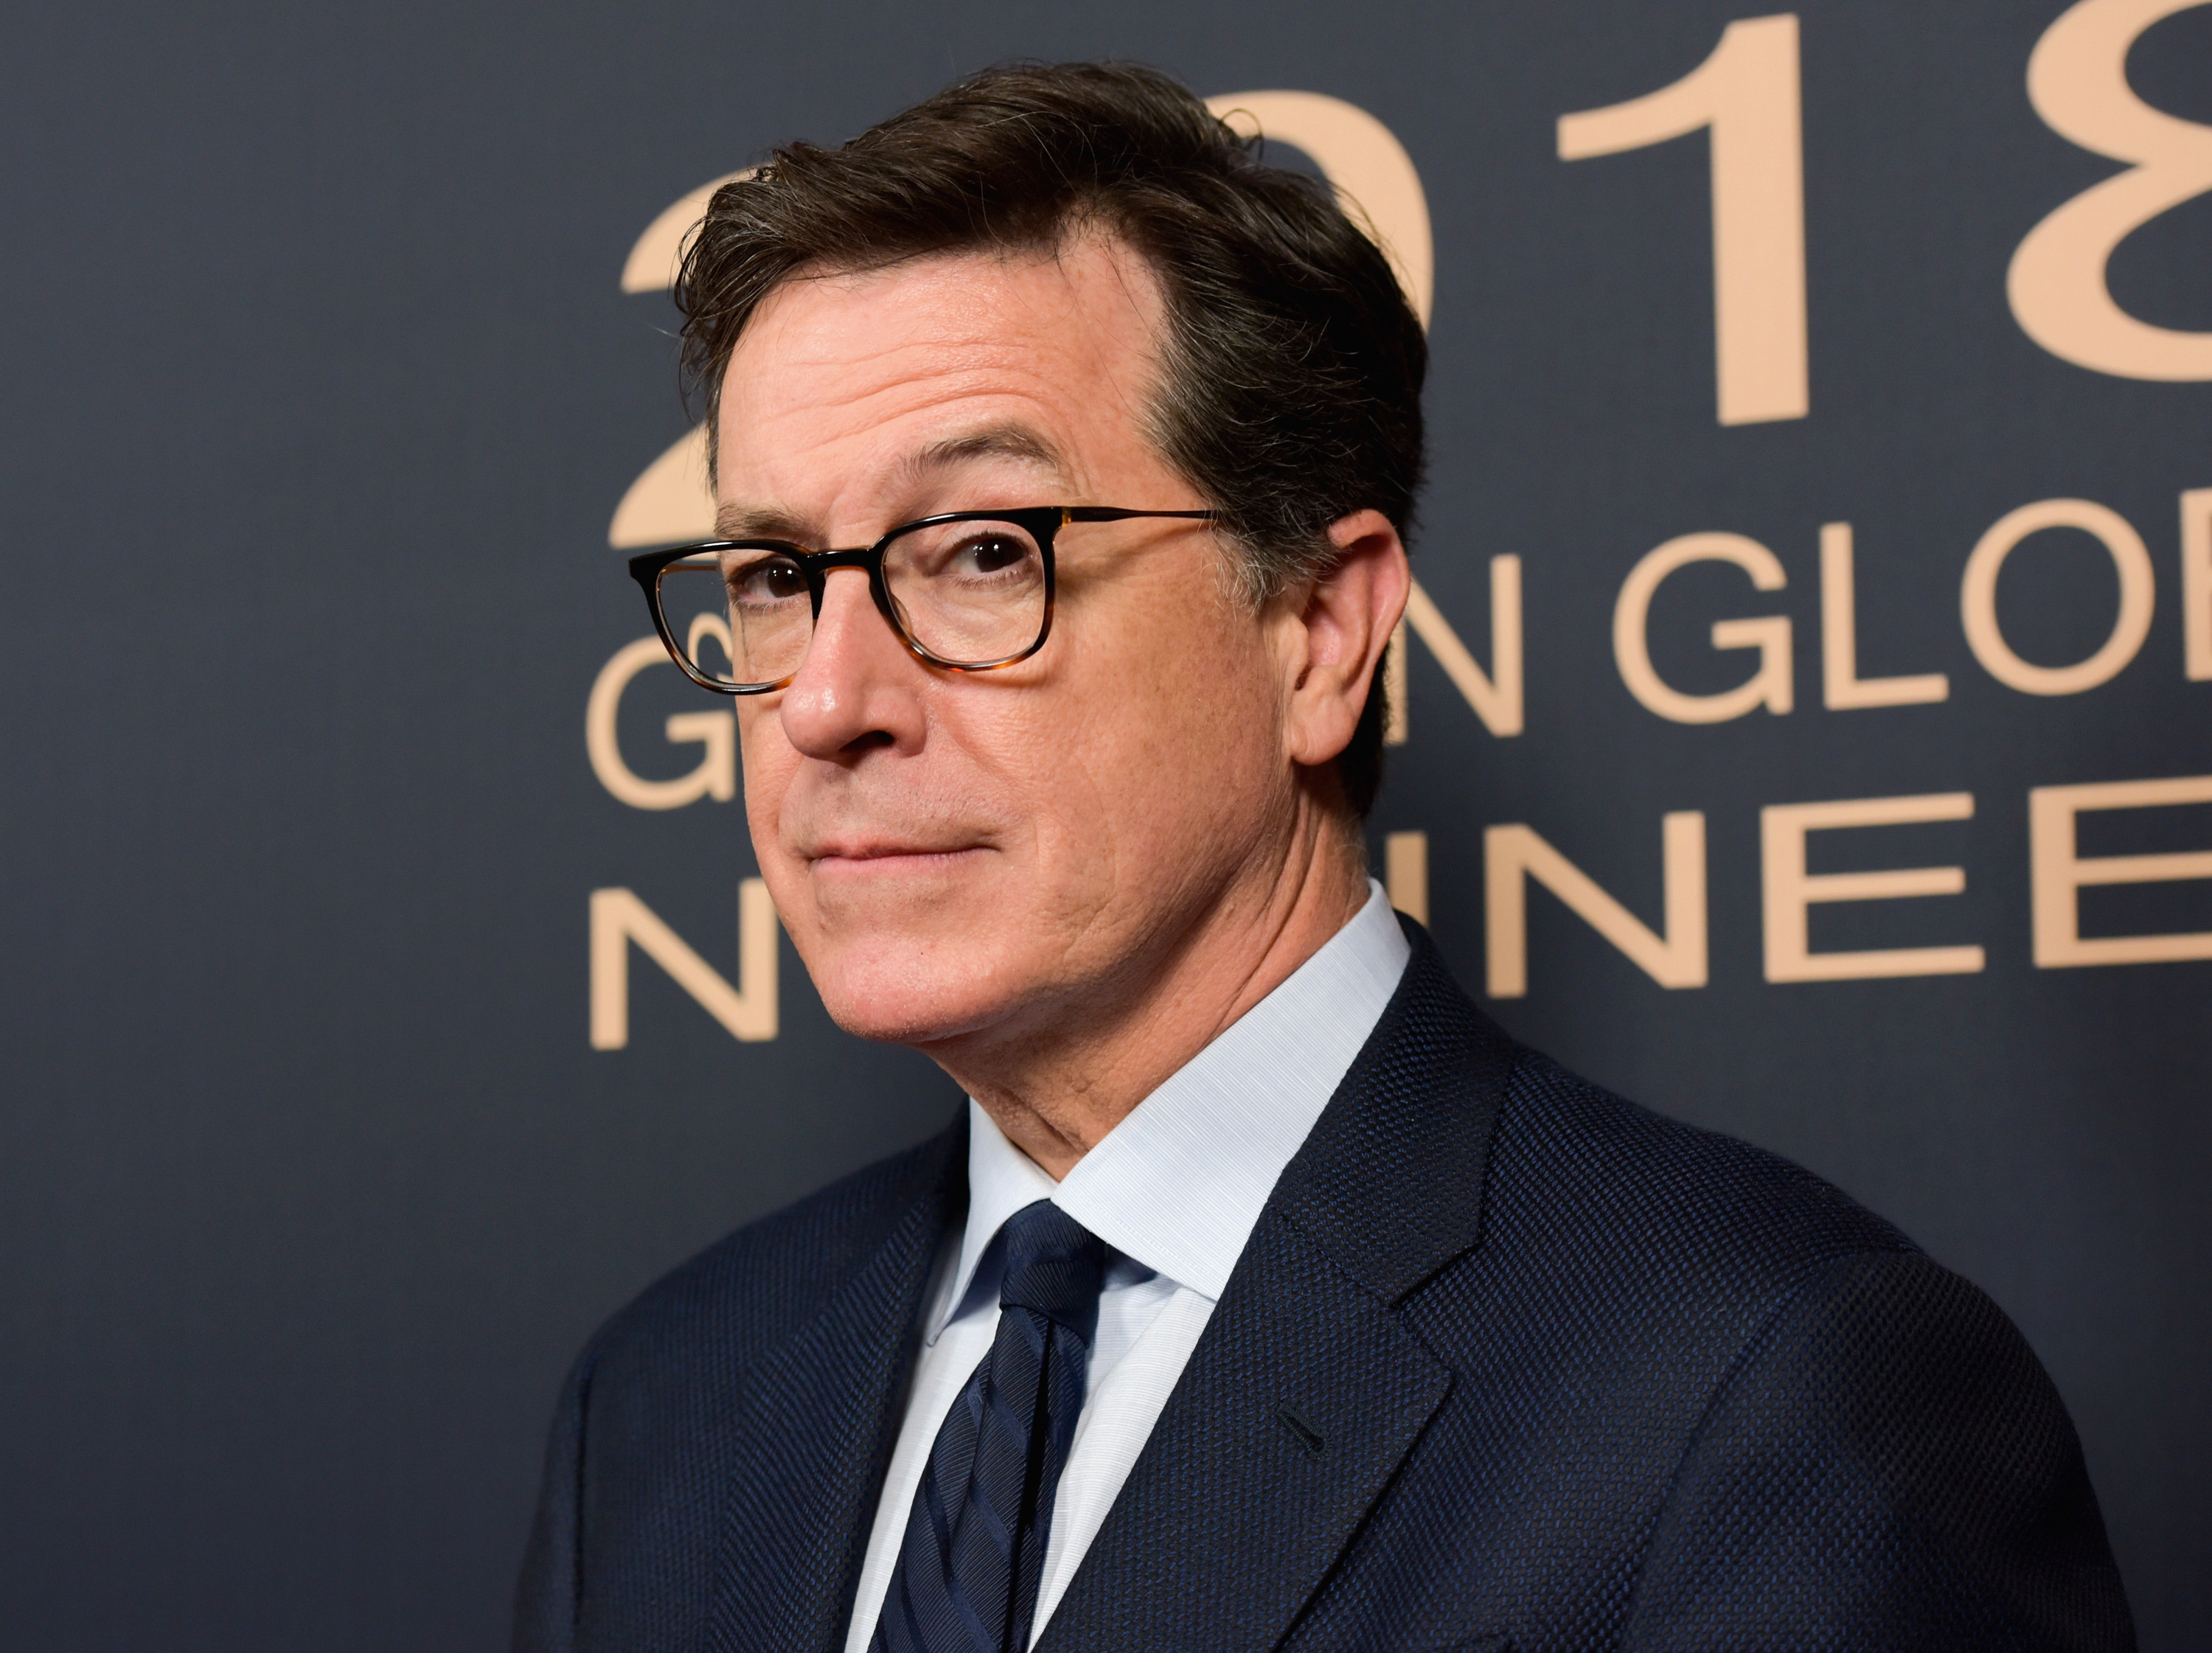 LOS ANGELES, CA - JANUARY 06: Stephen Colbert attends the Showtime Golden Globe Nominees Celebration at Sunset Tower on January 6, 2018 in Los Angeles, California. (Photo by Tara Ziemba/Getty Images)